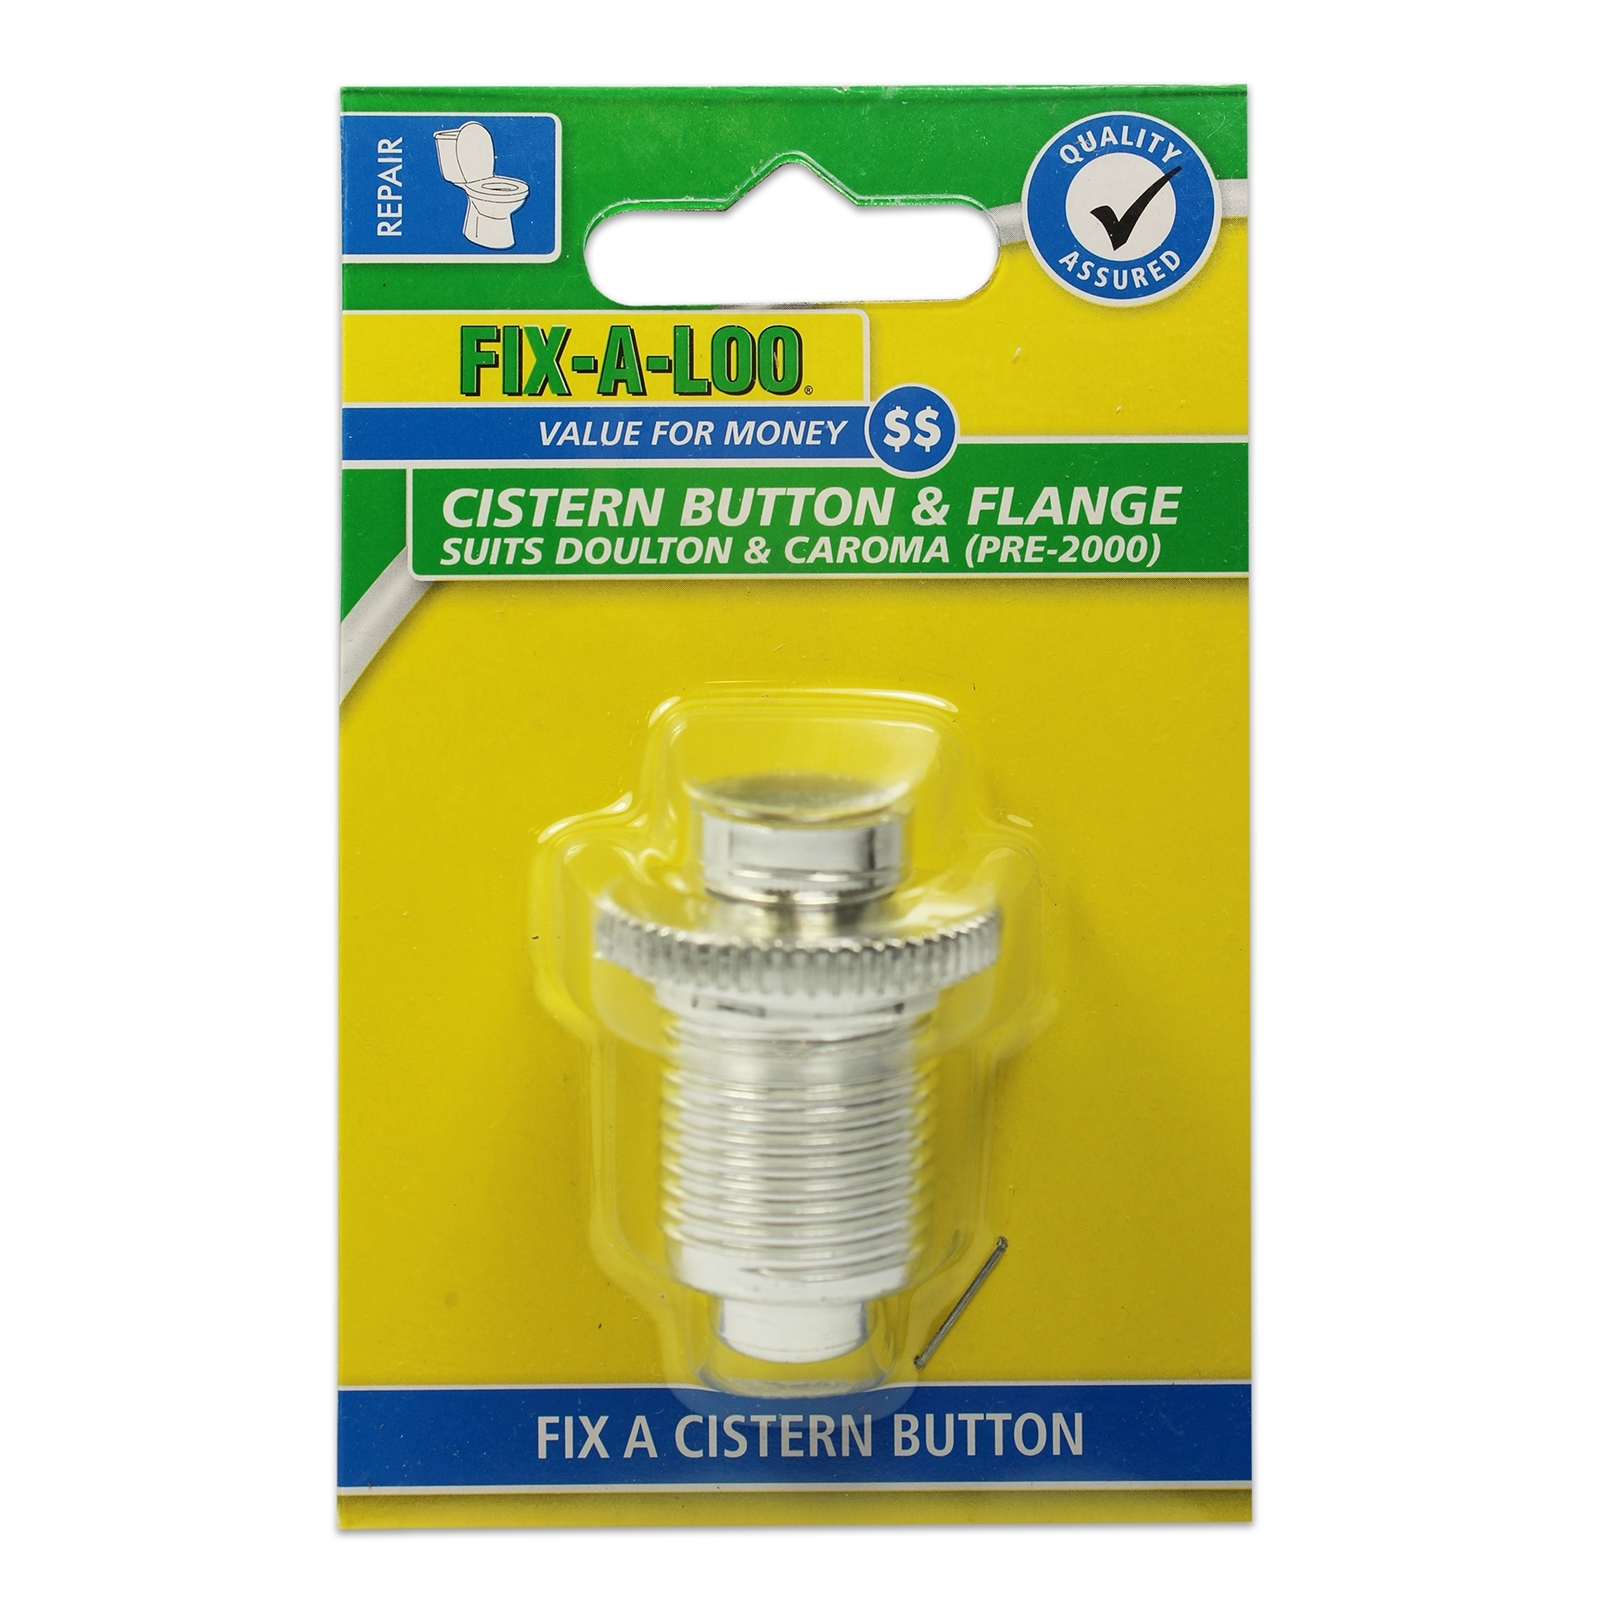 FIX-A-LOO Chrome Cistern Push Button And Flange